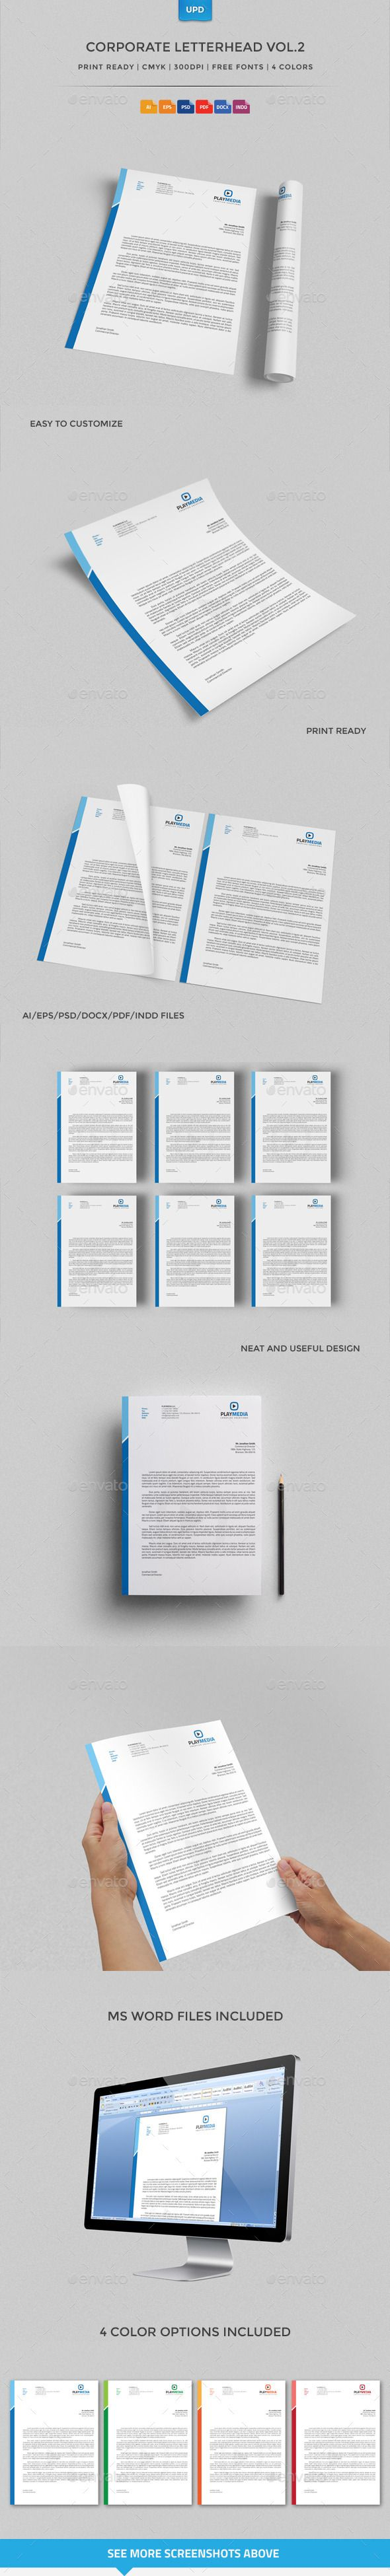 Corporate Letterhead Vol.2 with MS Word Doc Corporate Letterhead designed in 4 different color schemes with stylish design elements. You can easily change the logo, contact information and color of the element itself in just 1 click. Corporate Letterhead can be used absolutely any company or for personal use.